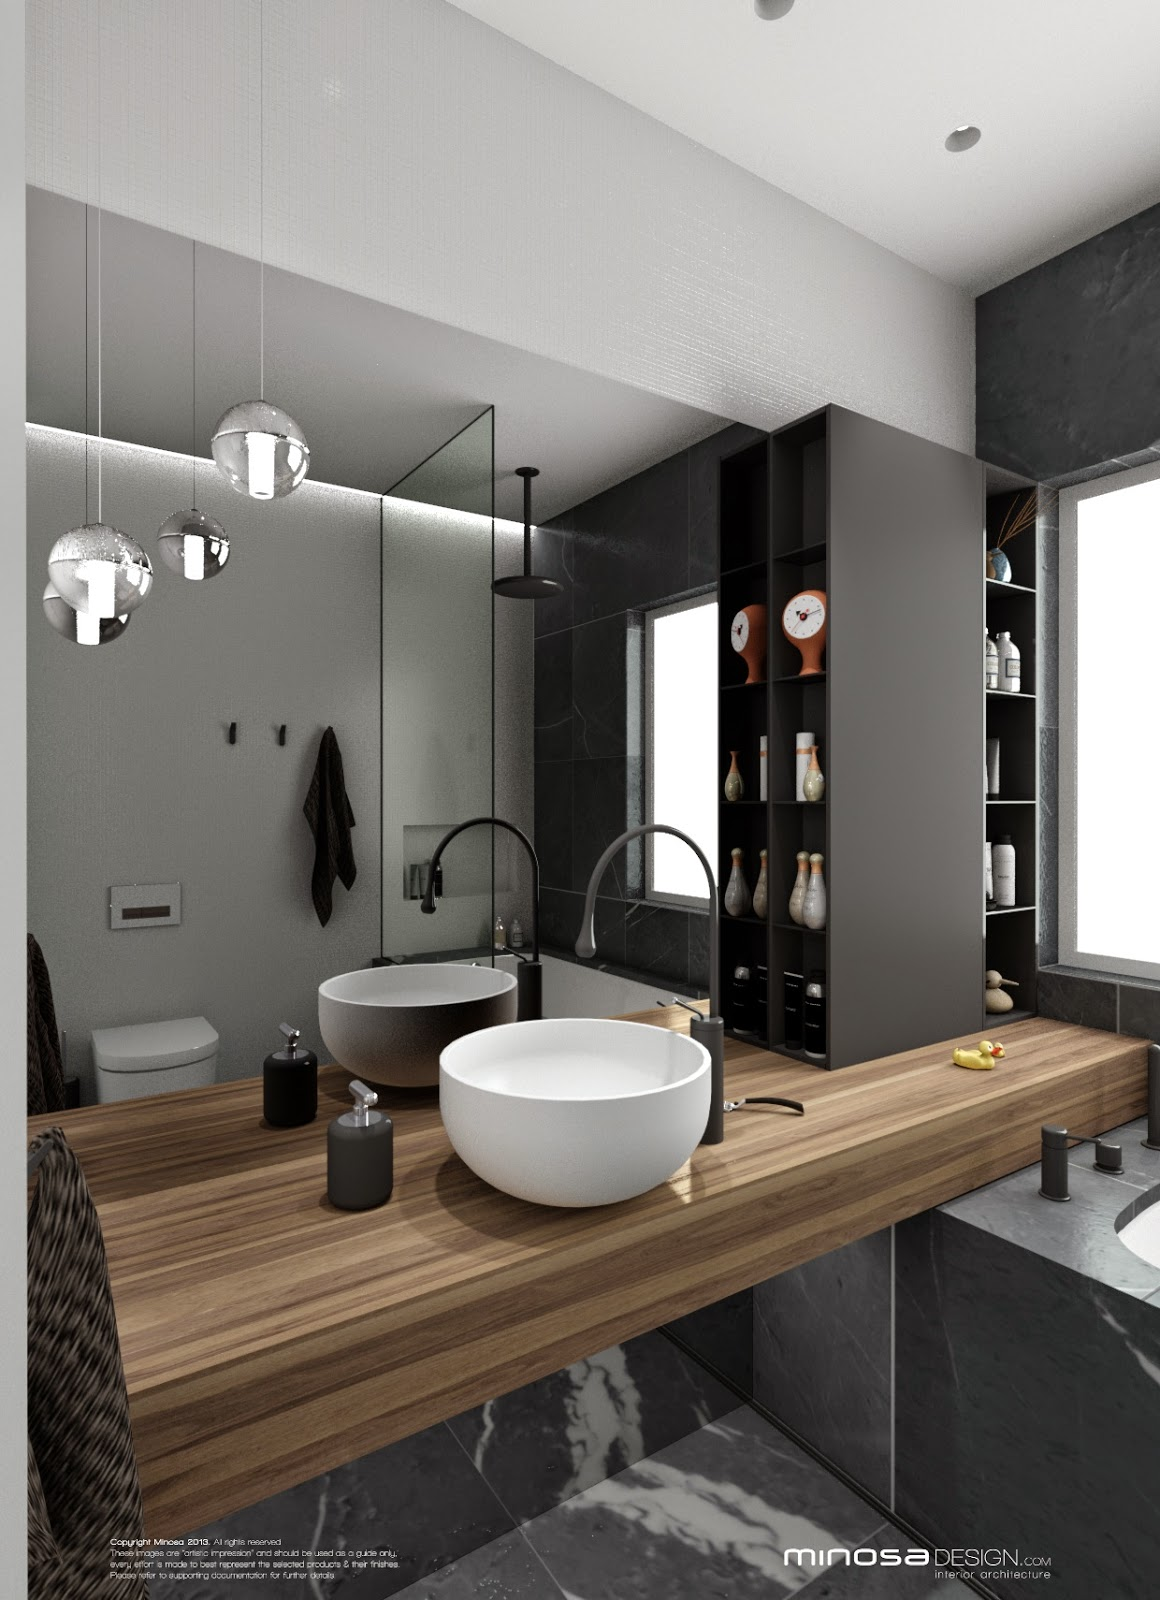 Minosa bathroom design small space feels large for Compact bathroom designs